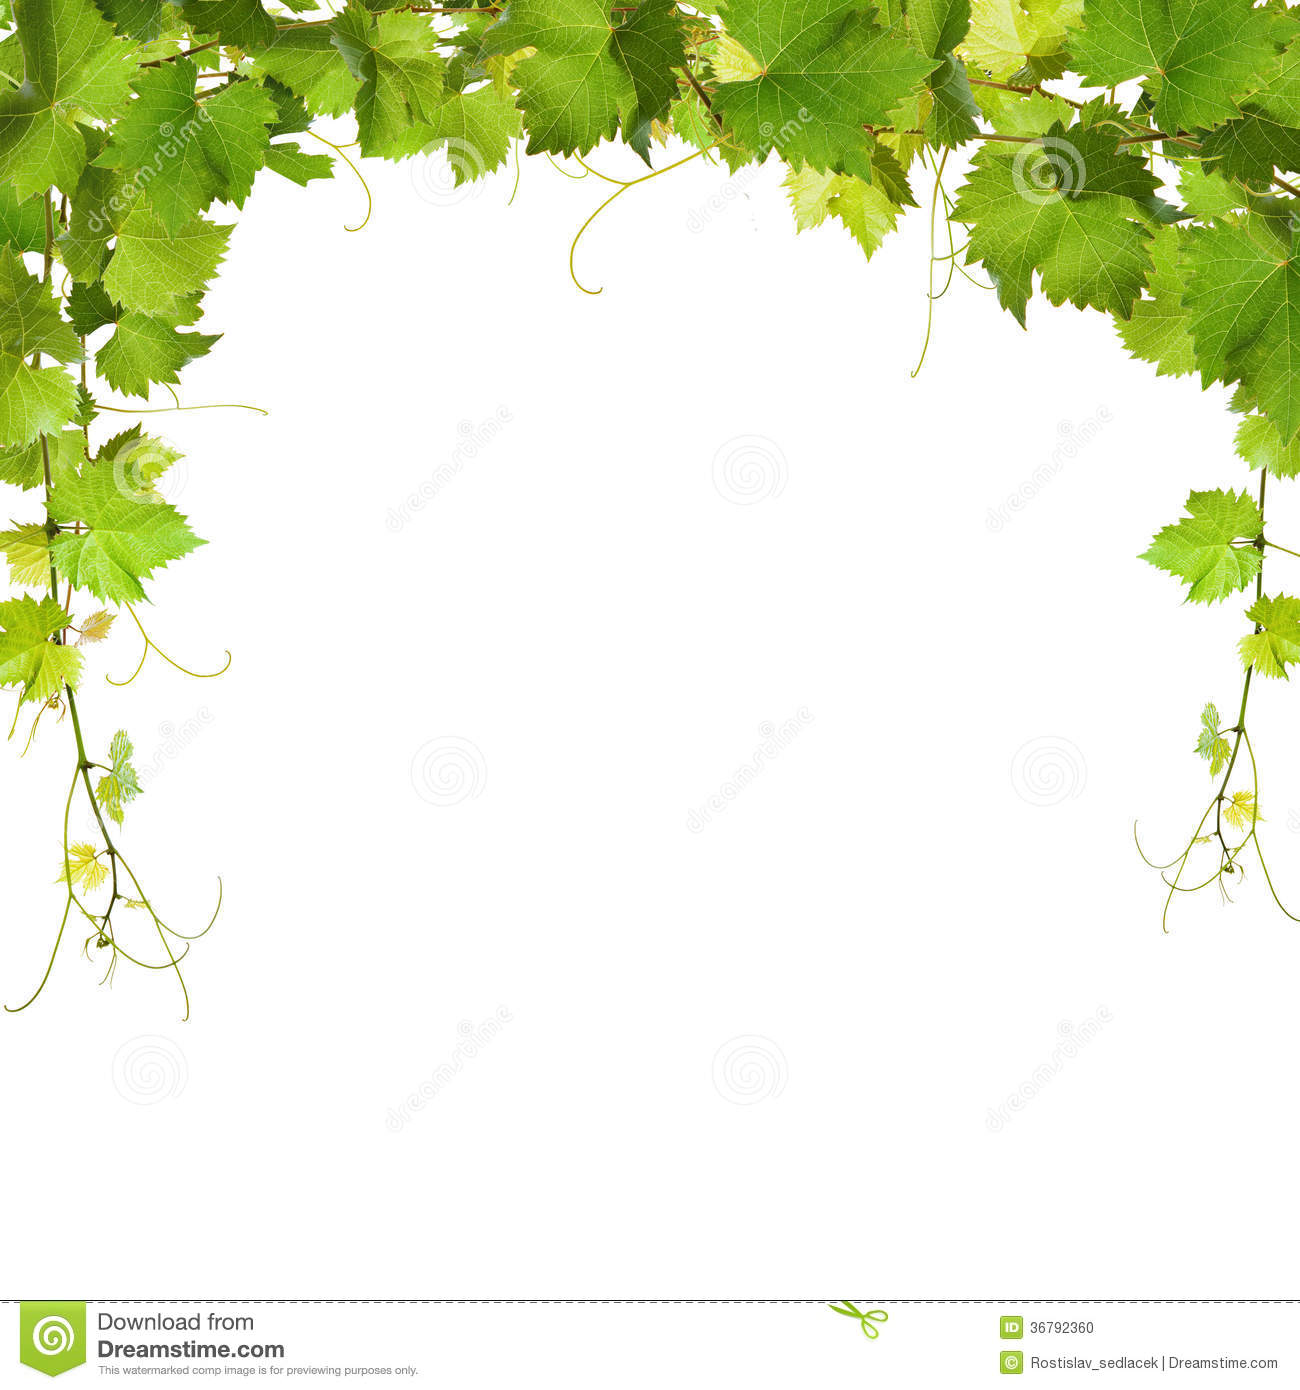 Bunch Of Green Vine Leaves And Grapes Vine Stock Photo Image Of Bunch Life 36792360